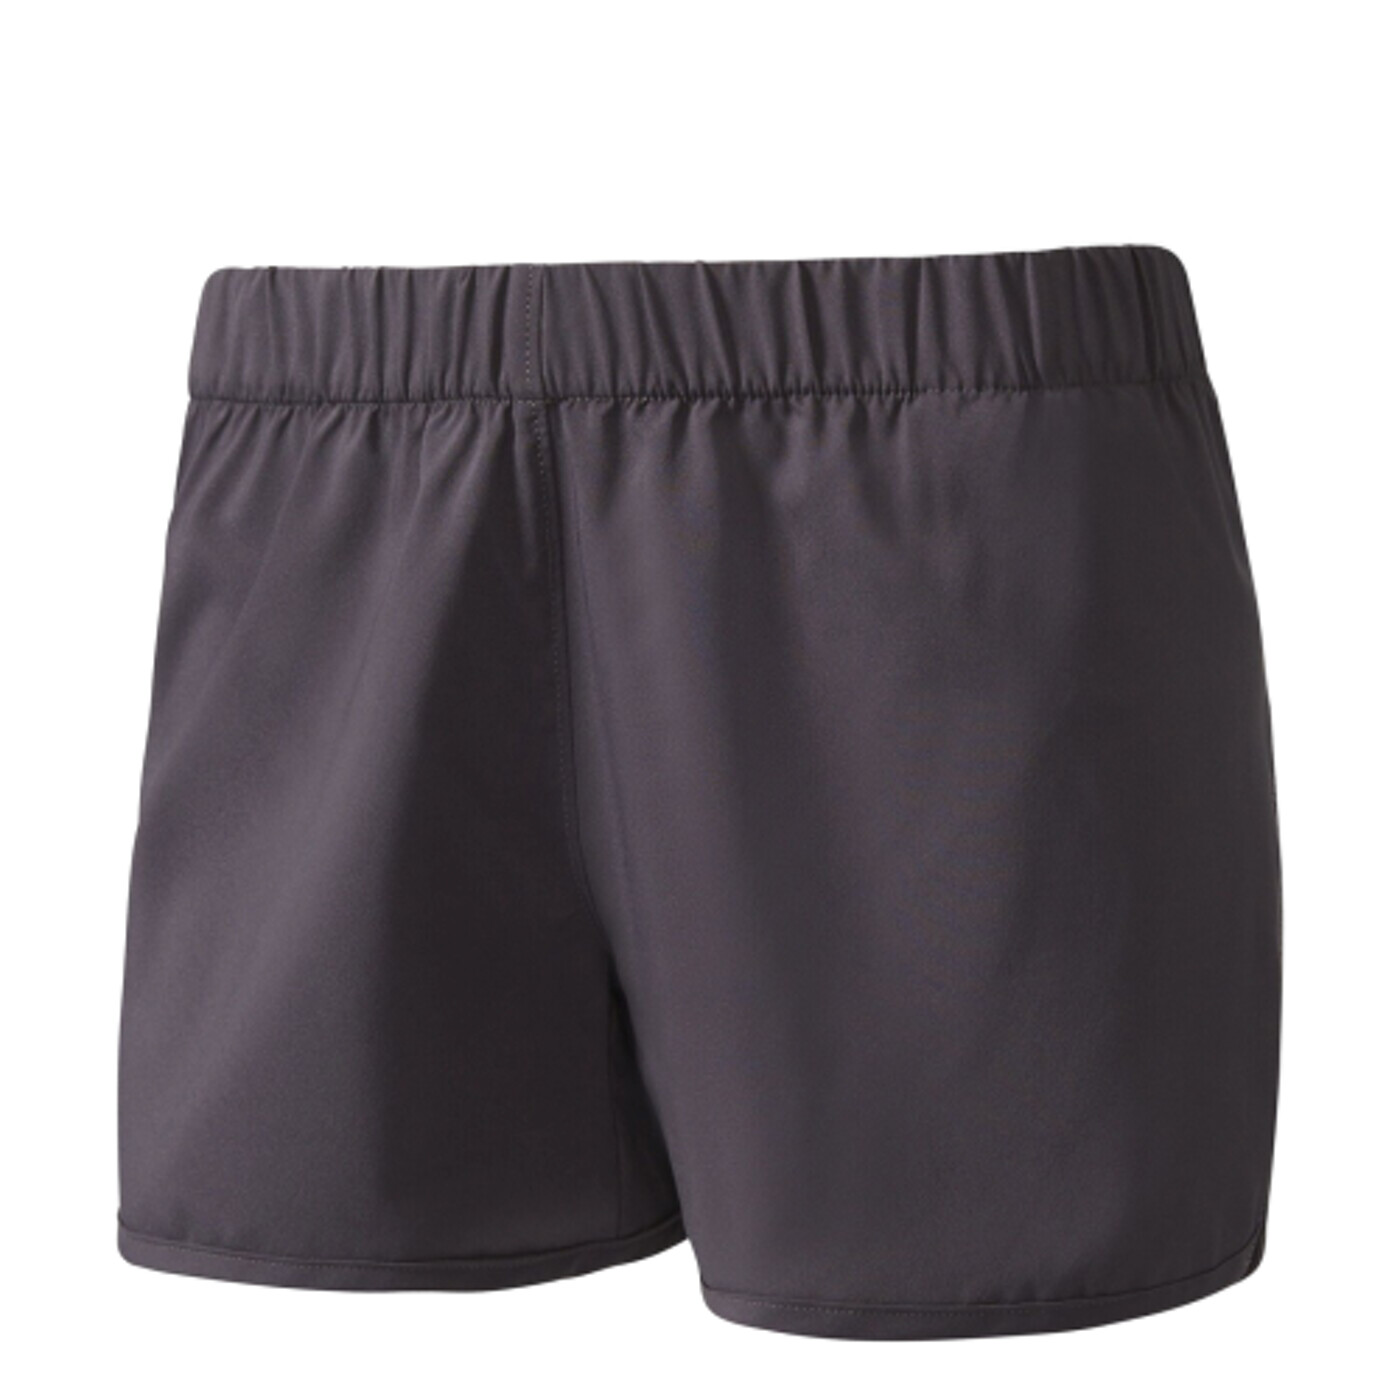 ADIDAS W MOUNTFL SHORT - Damen